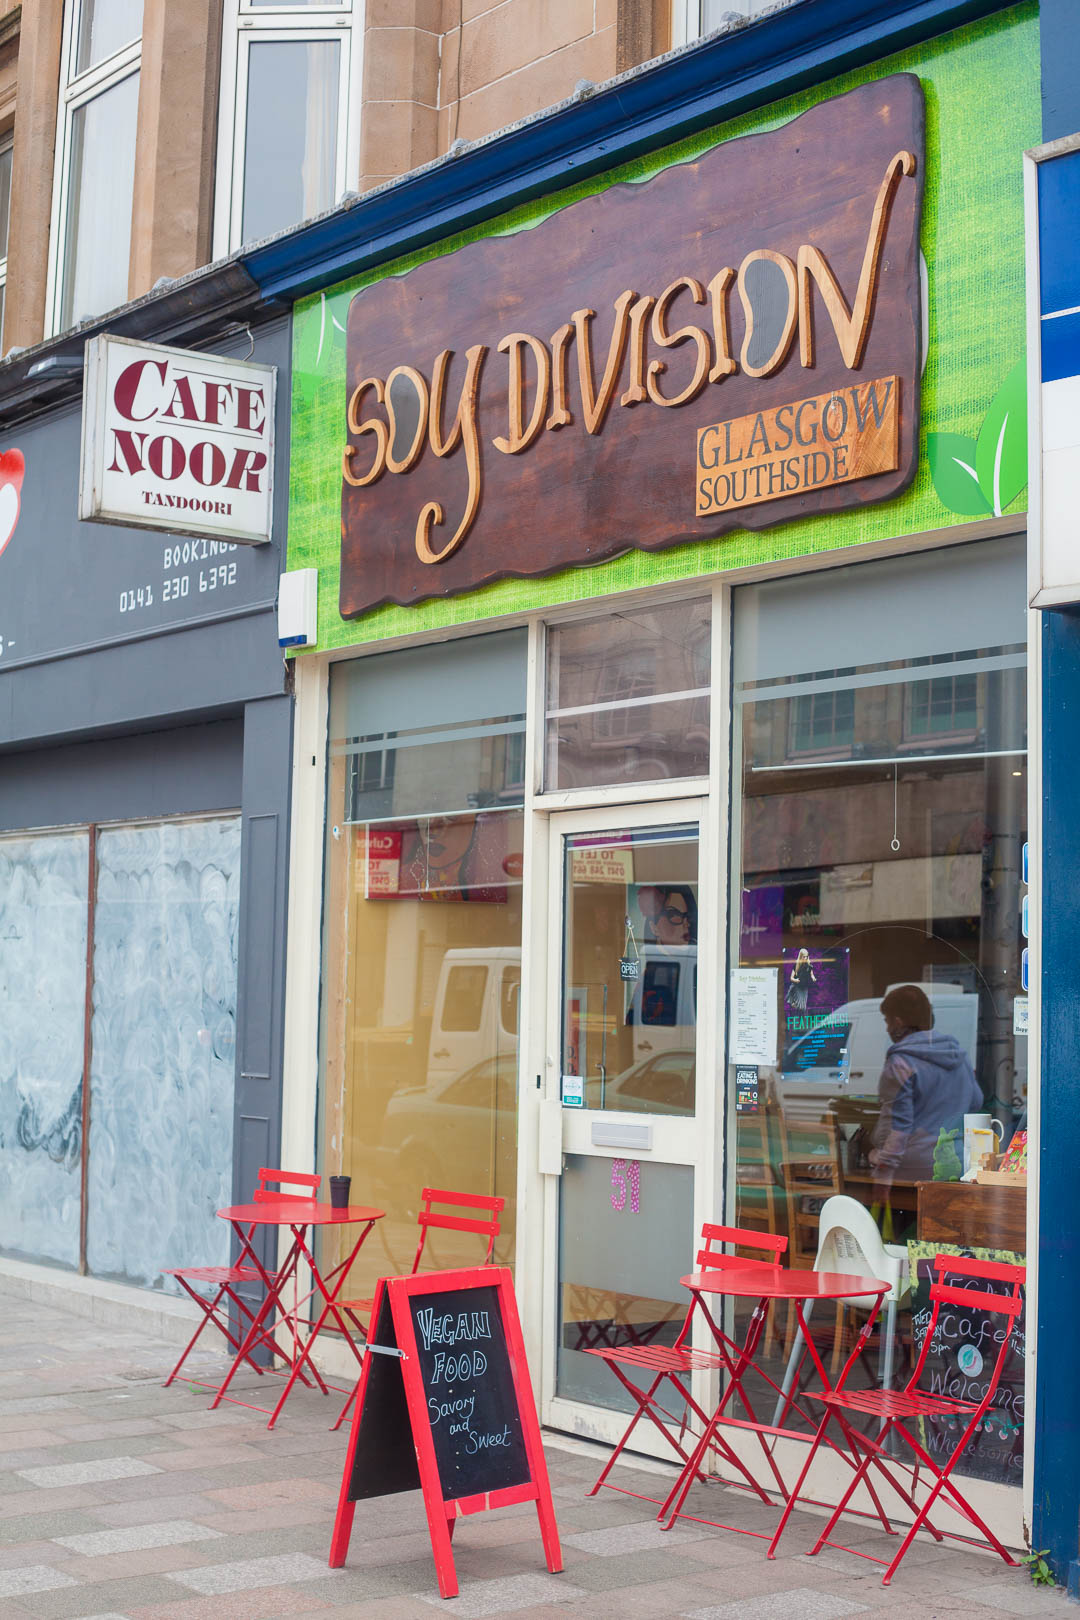 Vegan Restaurant Review: Soy Division Glasgow | Soy Division is an unassuming vegan cafe in the Southside of Glasgow, that would not only win the award for best vegan name in my books, but also serves up delicious homemade vegan breakfast and lunch fare, like meatless cooked breakfasts, dairy-free cheesecakes and fluffy French toasts!